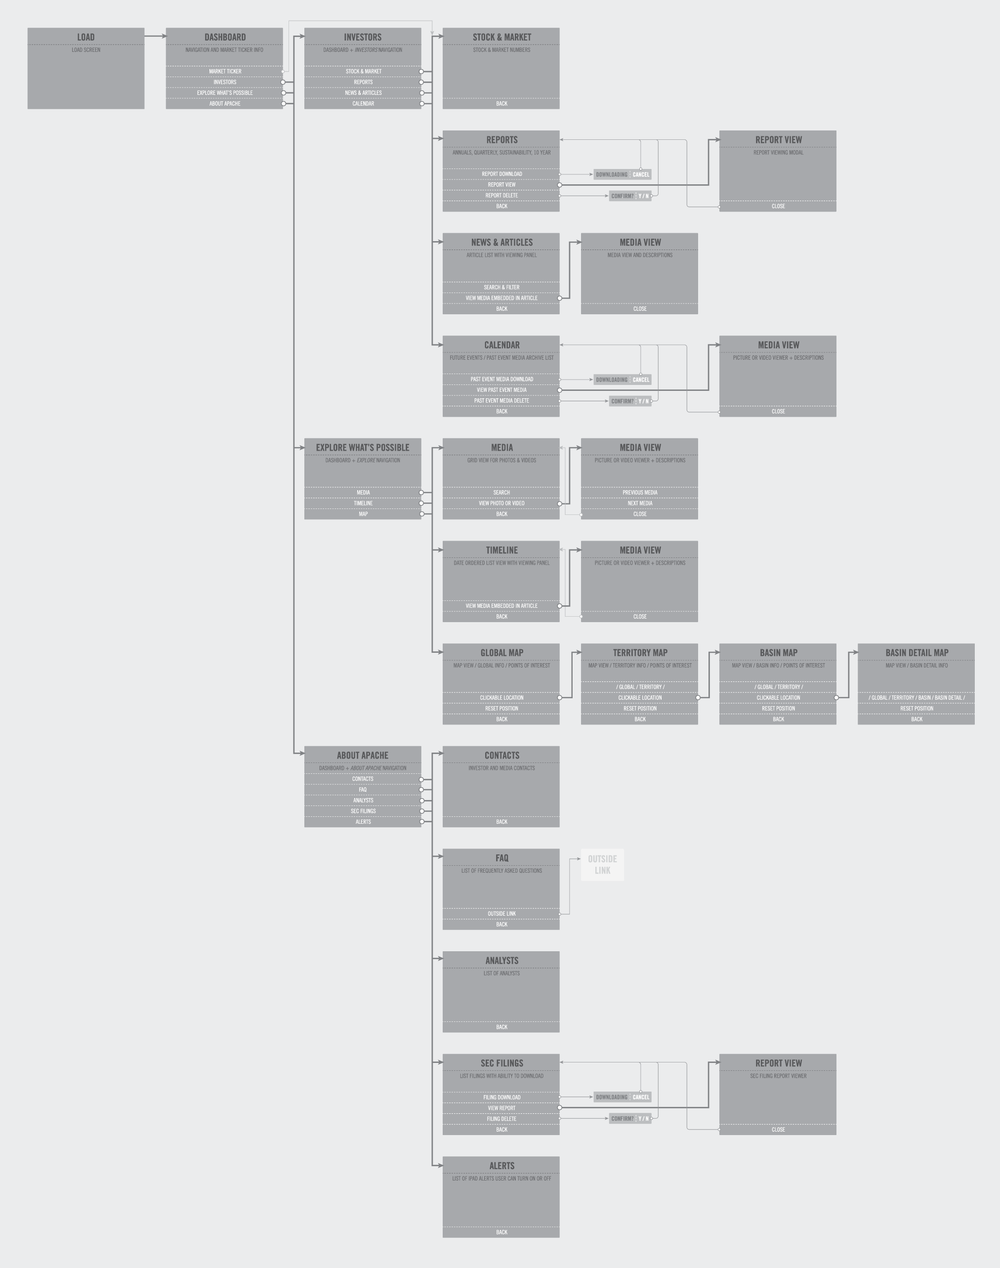 The app flow and mapneeded to be completely redesigned to improve the user experience. The original process lacked discipline and included pages that wereunnecessary for the user.